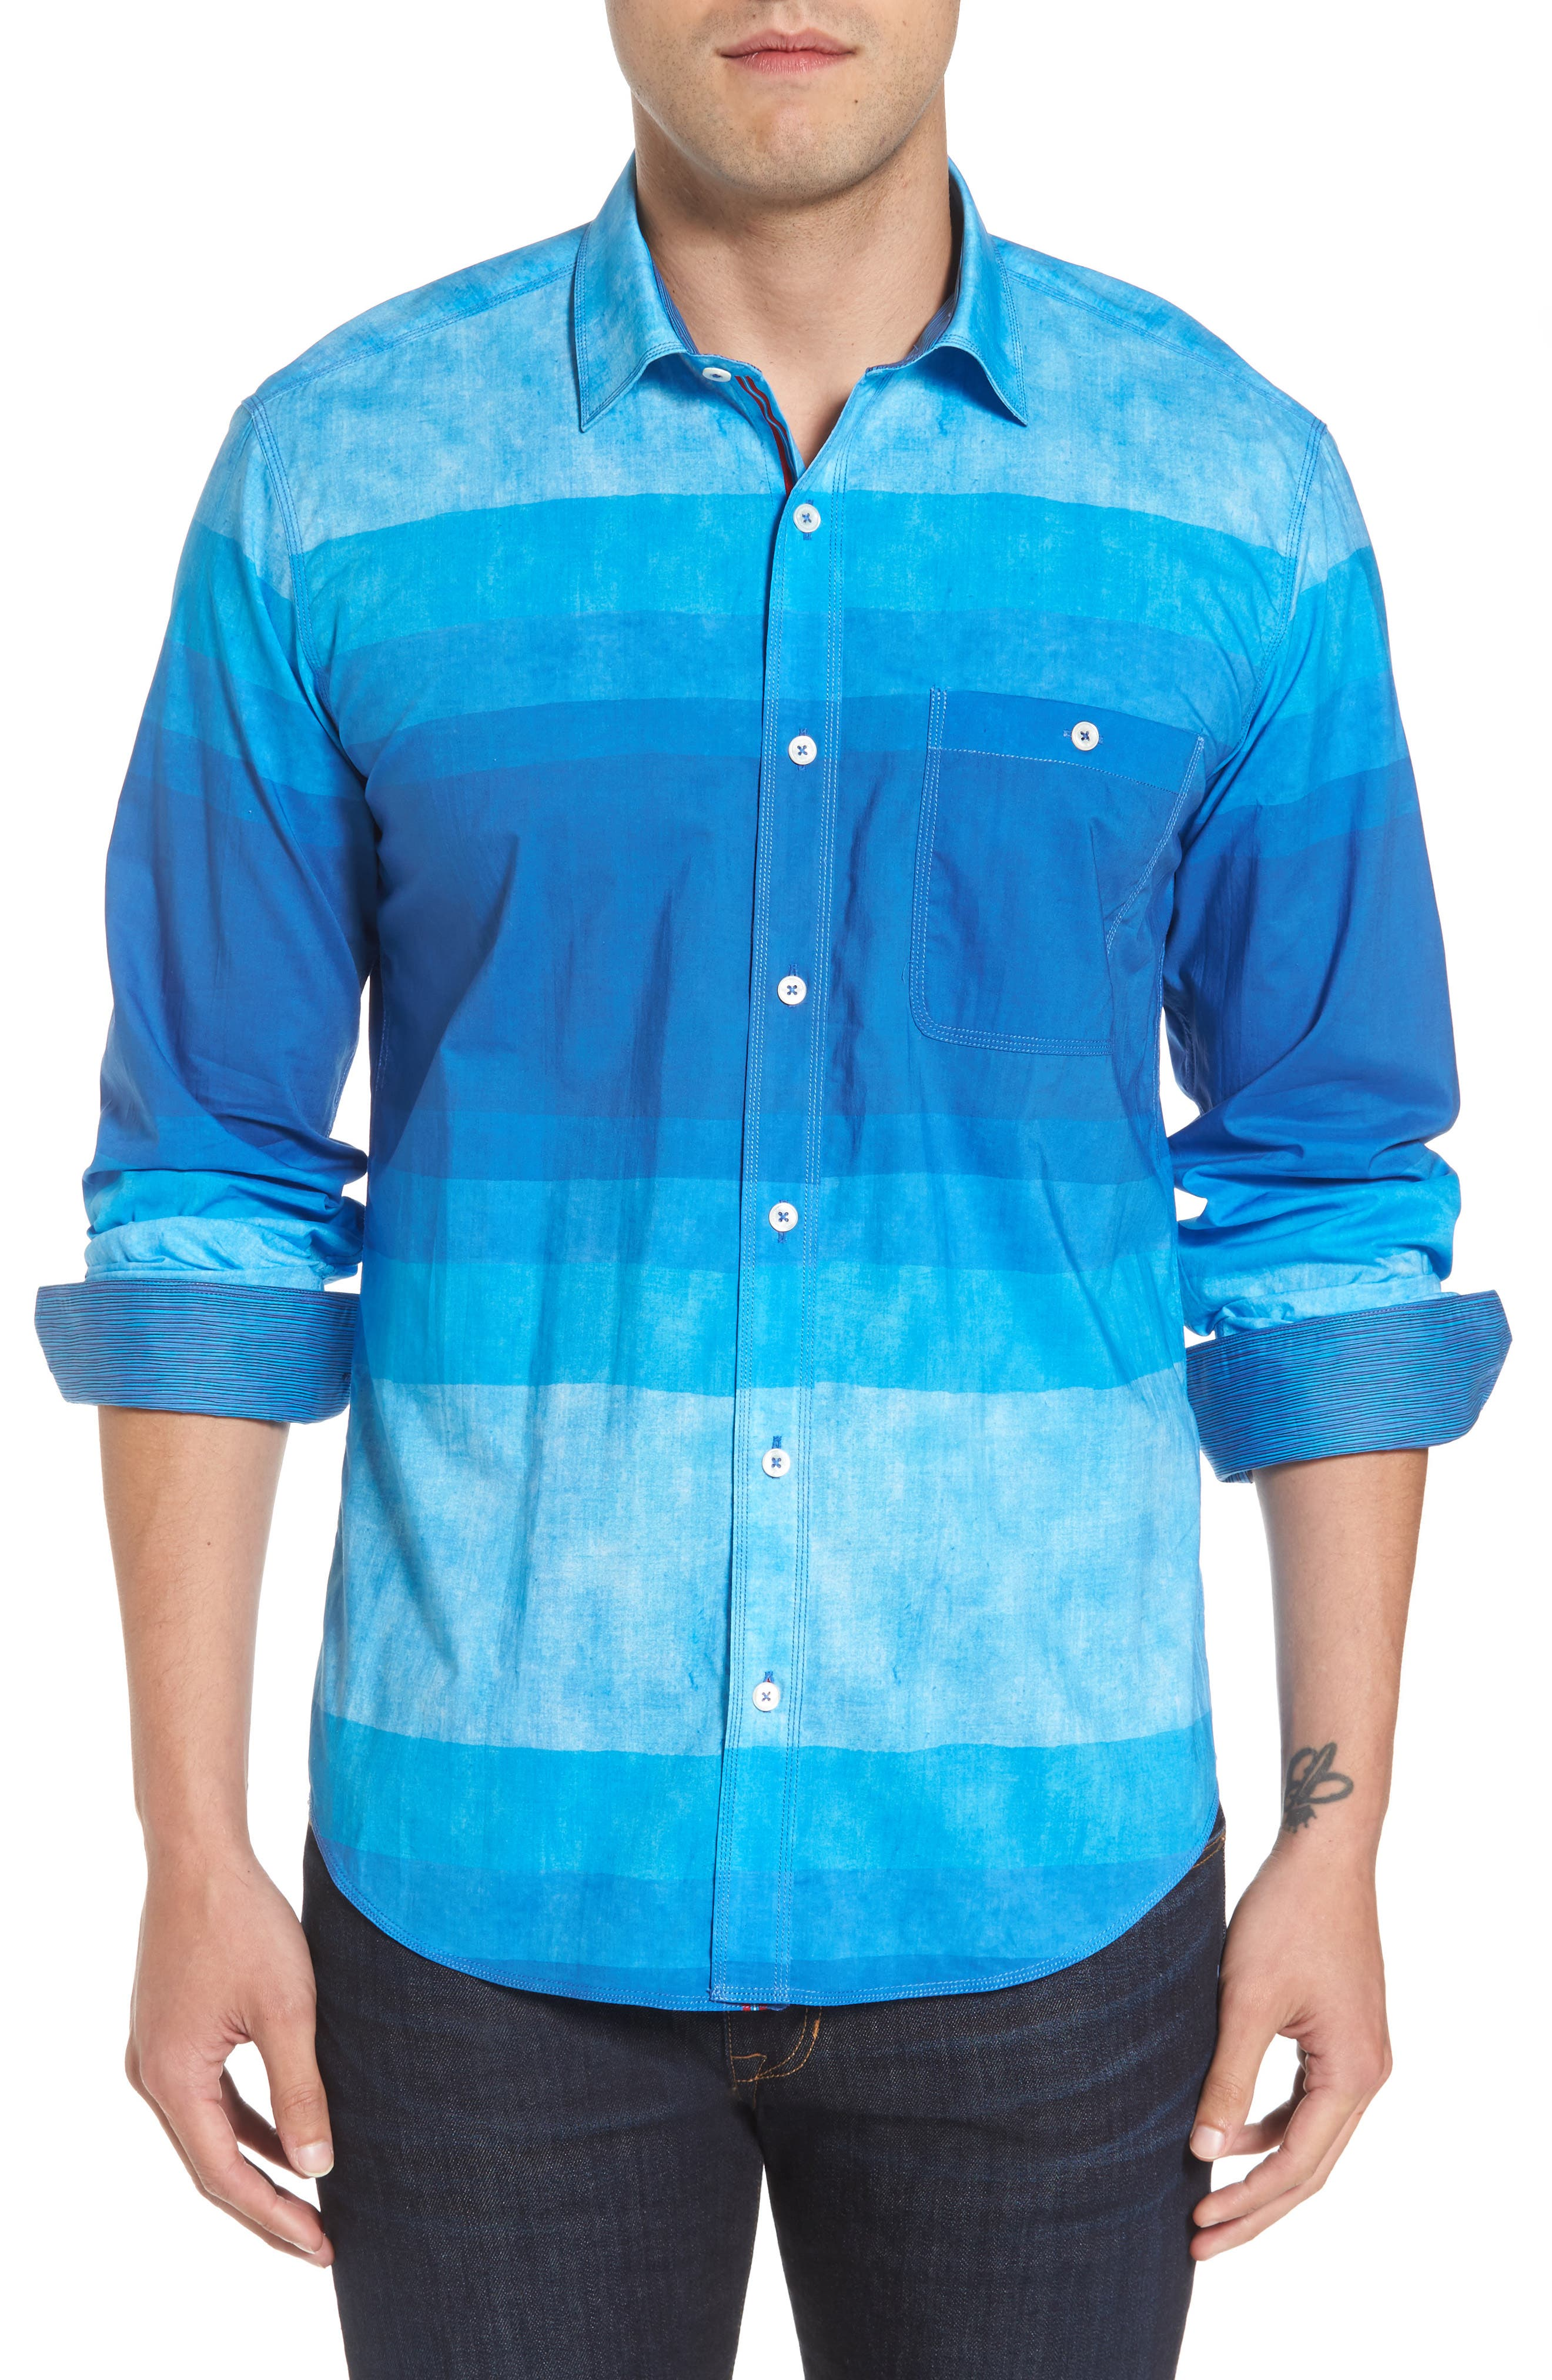 Alternate Image 1 Selected - Bugatchi Shaped Fit Colorblock Sport Shirt